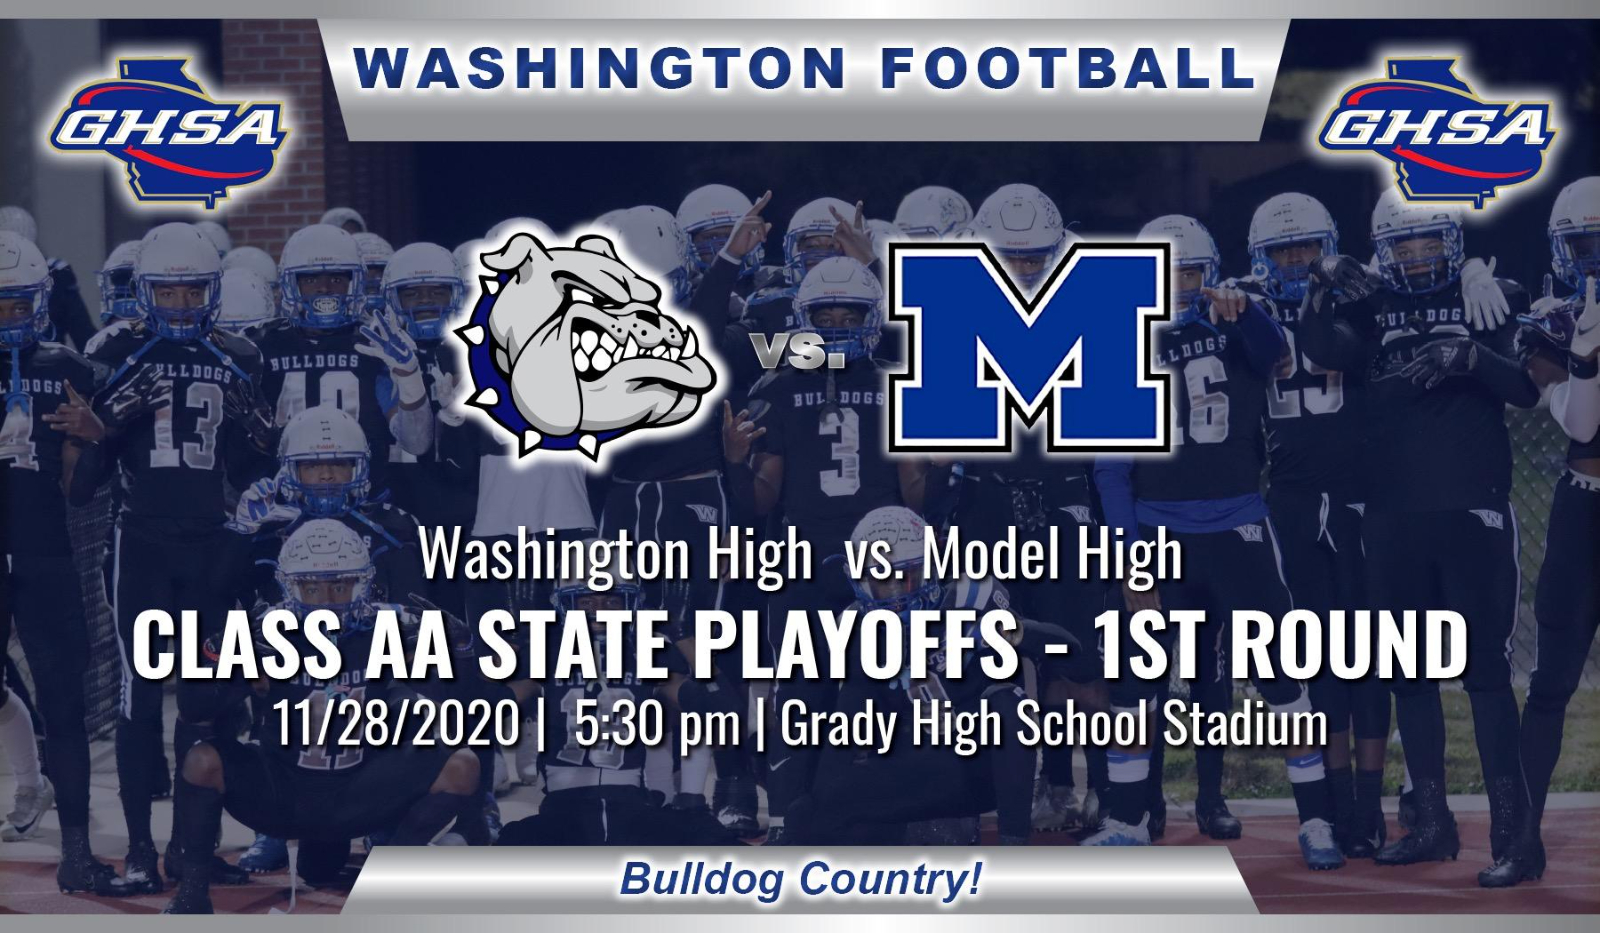 Class AA State Playoff – First Round